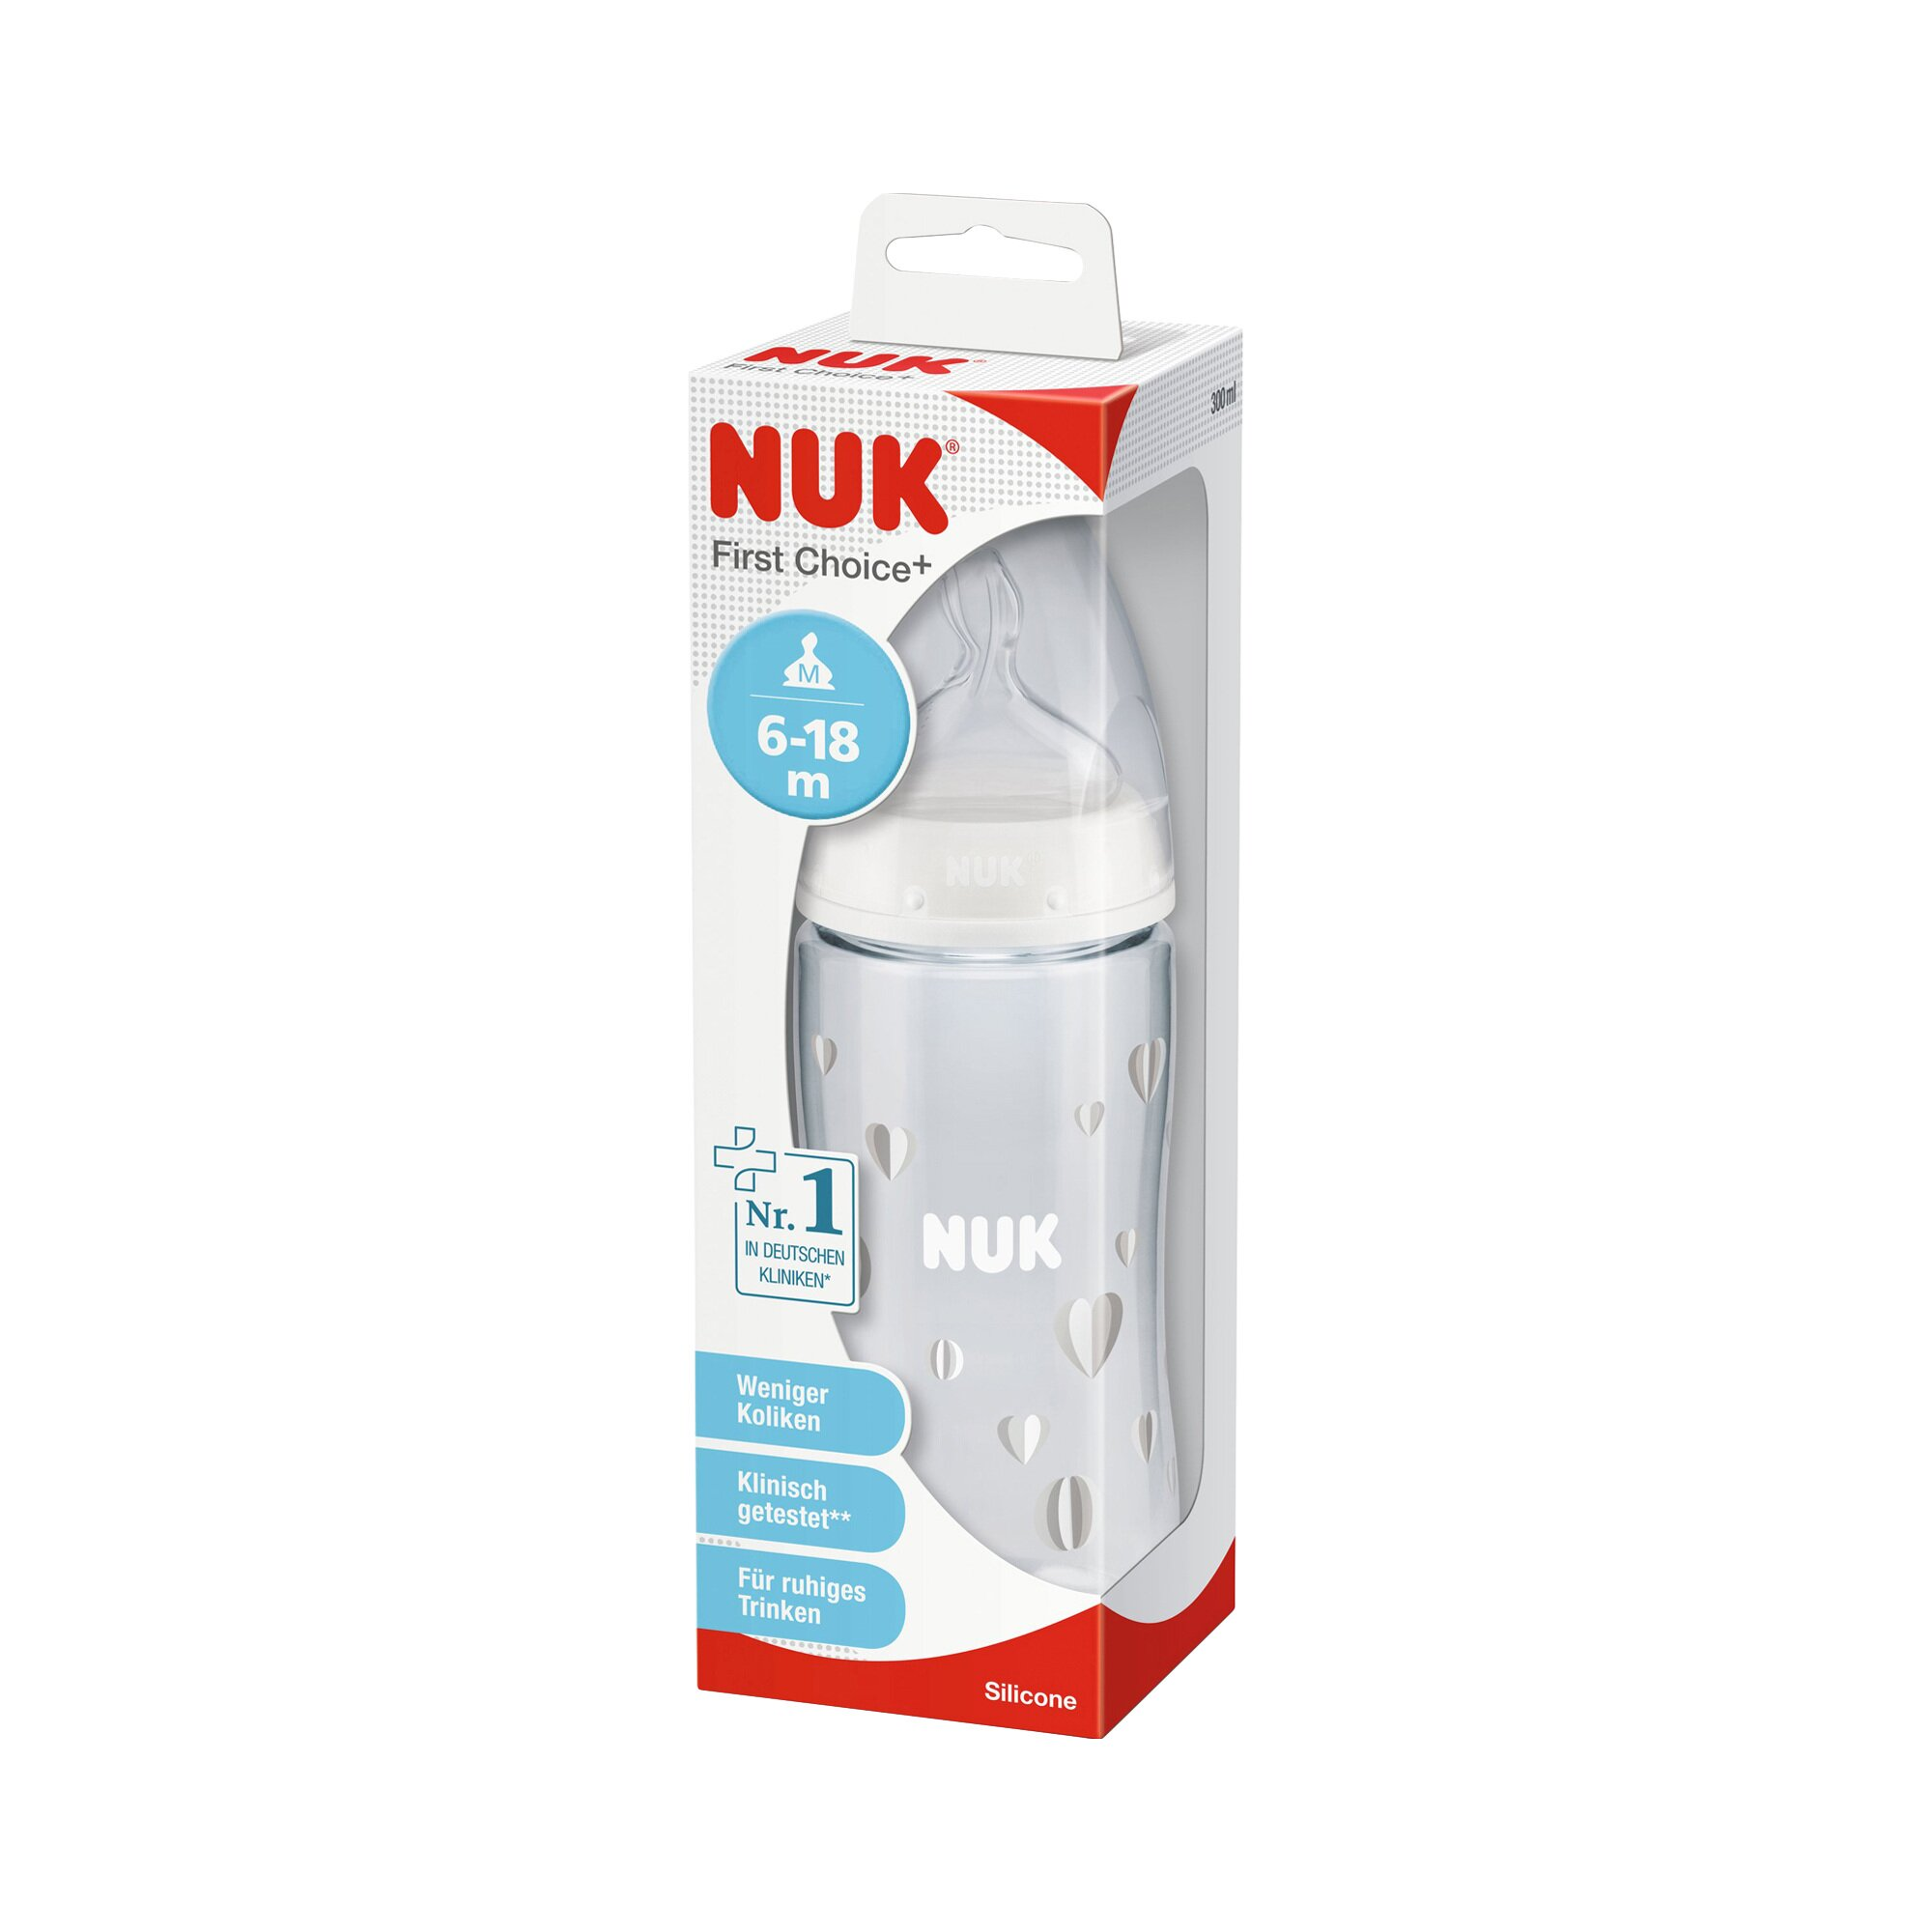 nuk-anti-kolik-weithals-flasche-first-choice-plus-aus-polyamid-300-ml-glasoptik